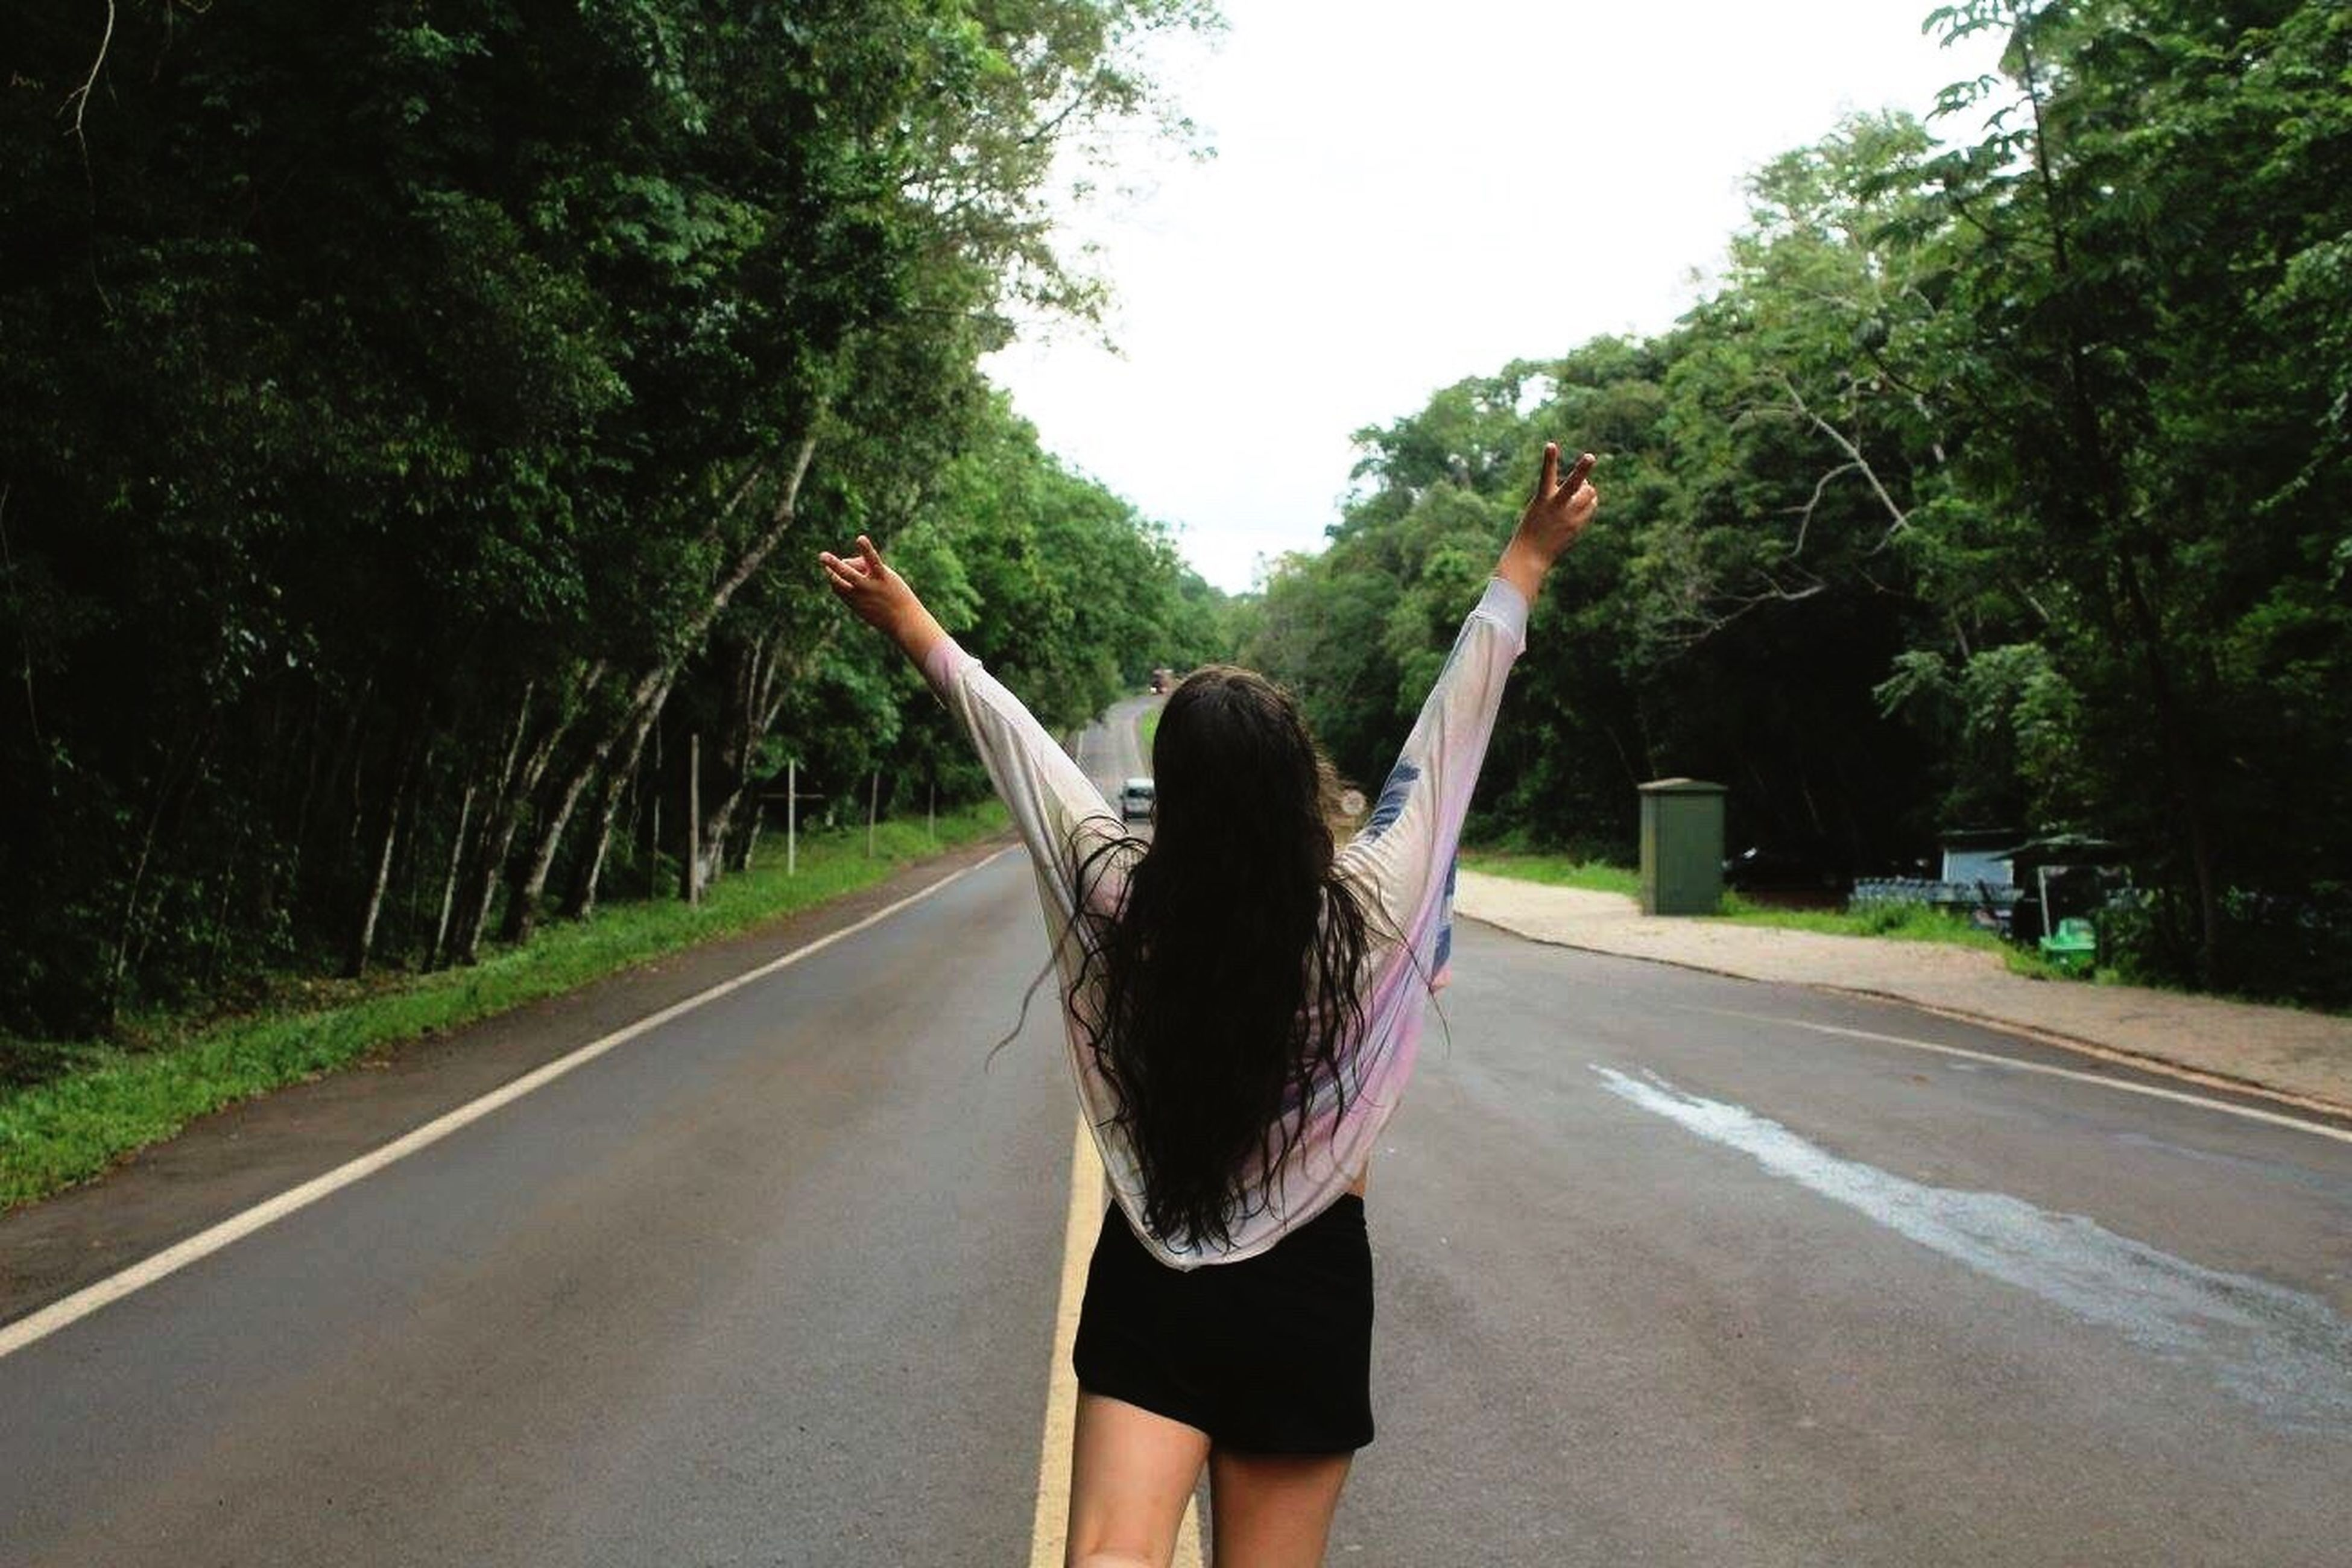 rear view, road, only women, tree, one woman only, adults only, human body part, one person, people, the way forward, hand raised, outdoors, adult, young adult, day, one young woman only, nature, human hand, sky